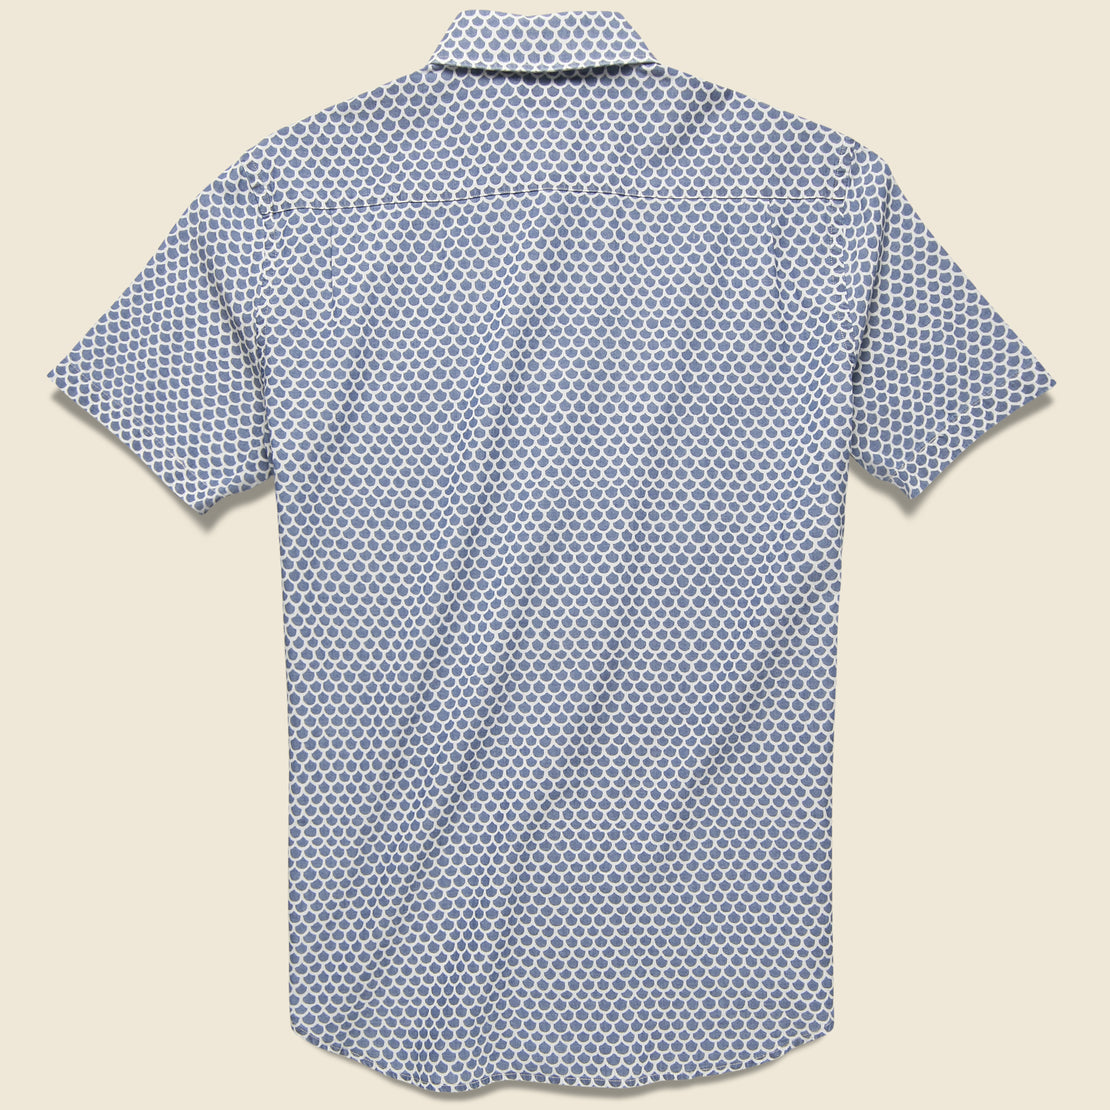 Playa Shirt - Fishscale Redux